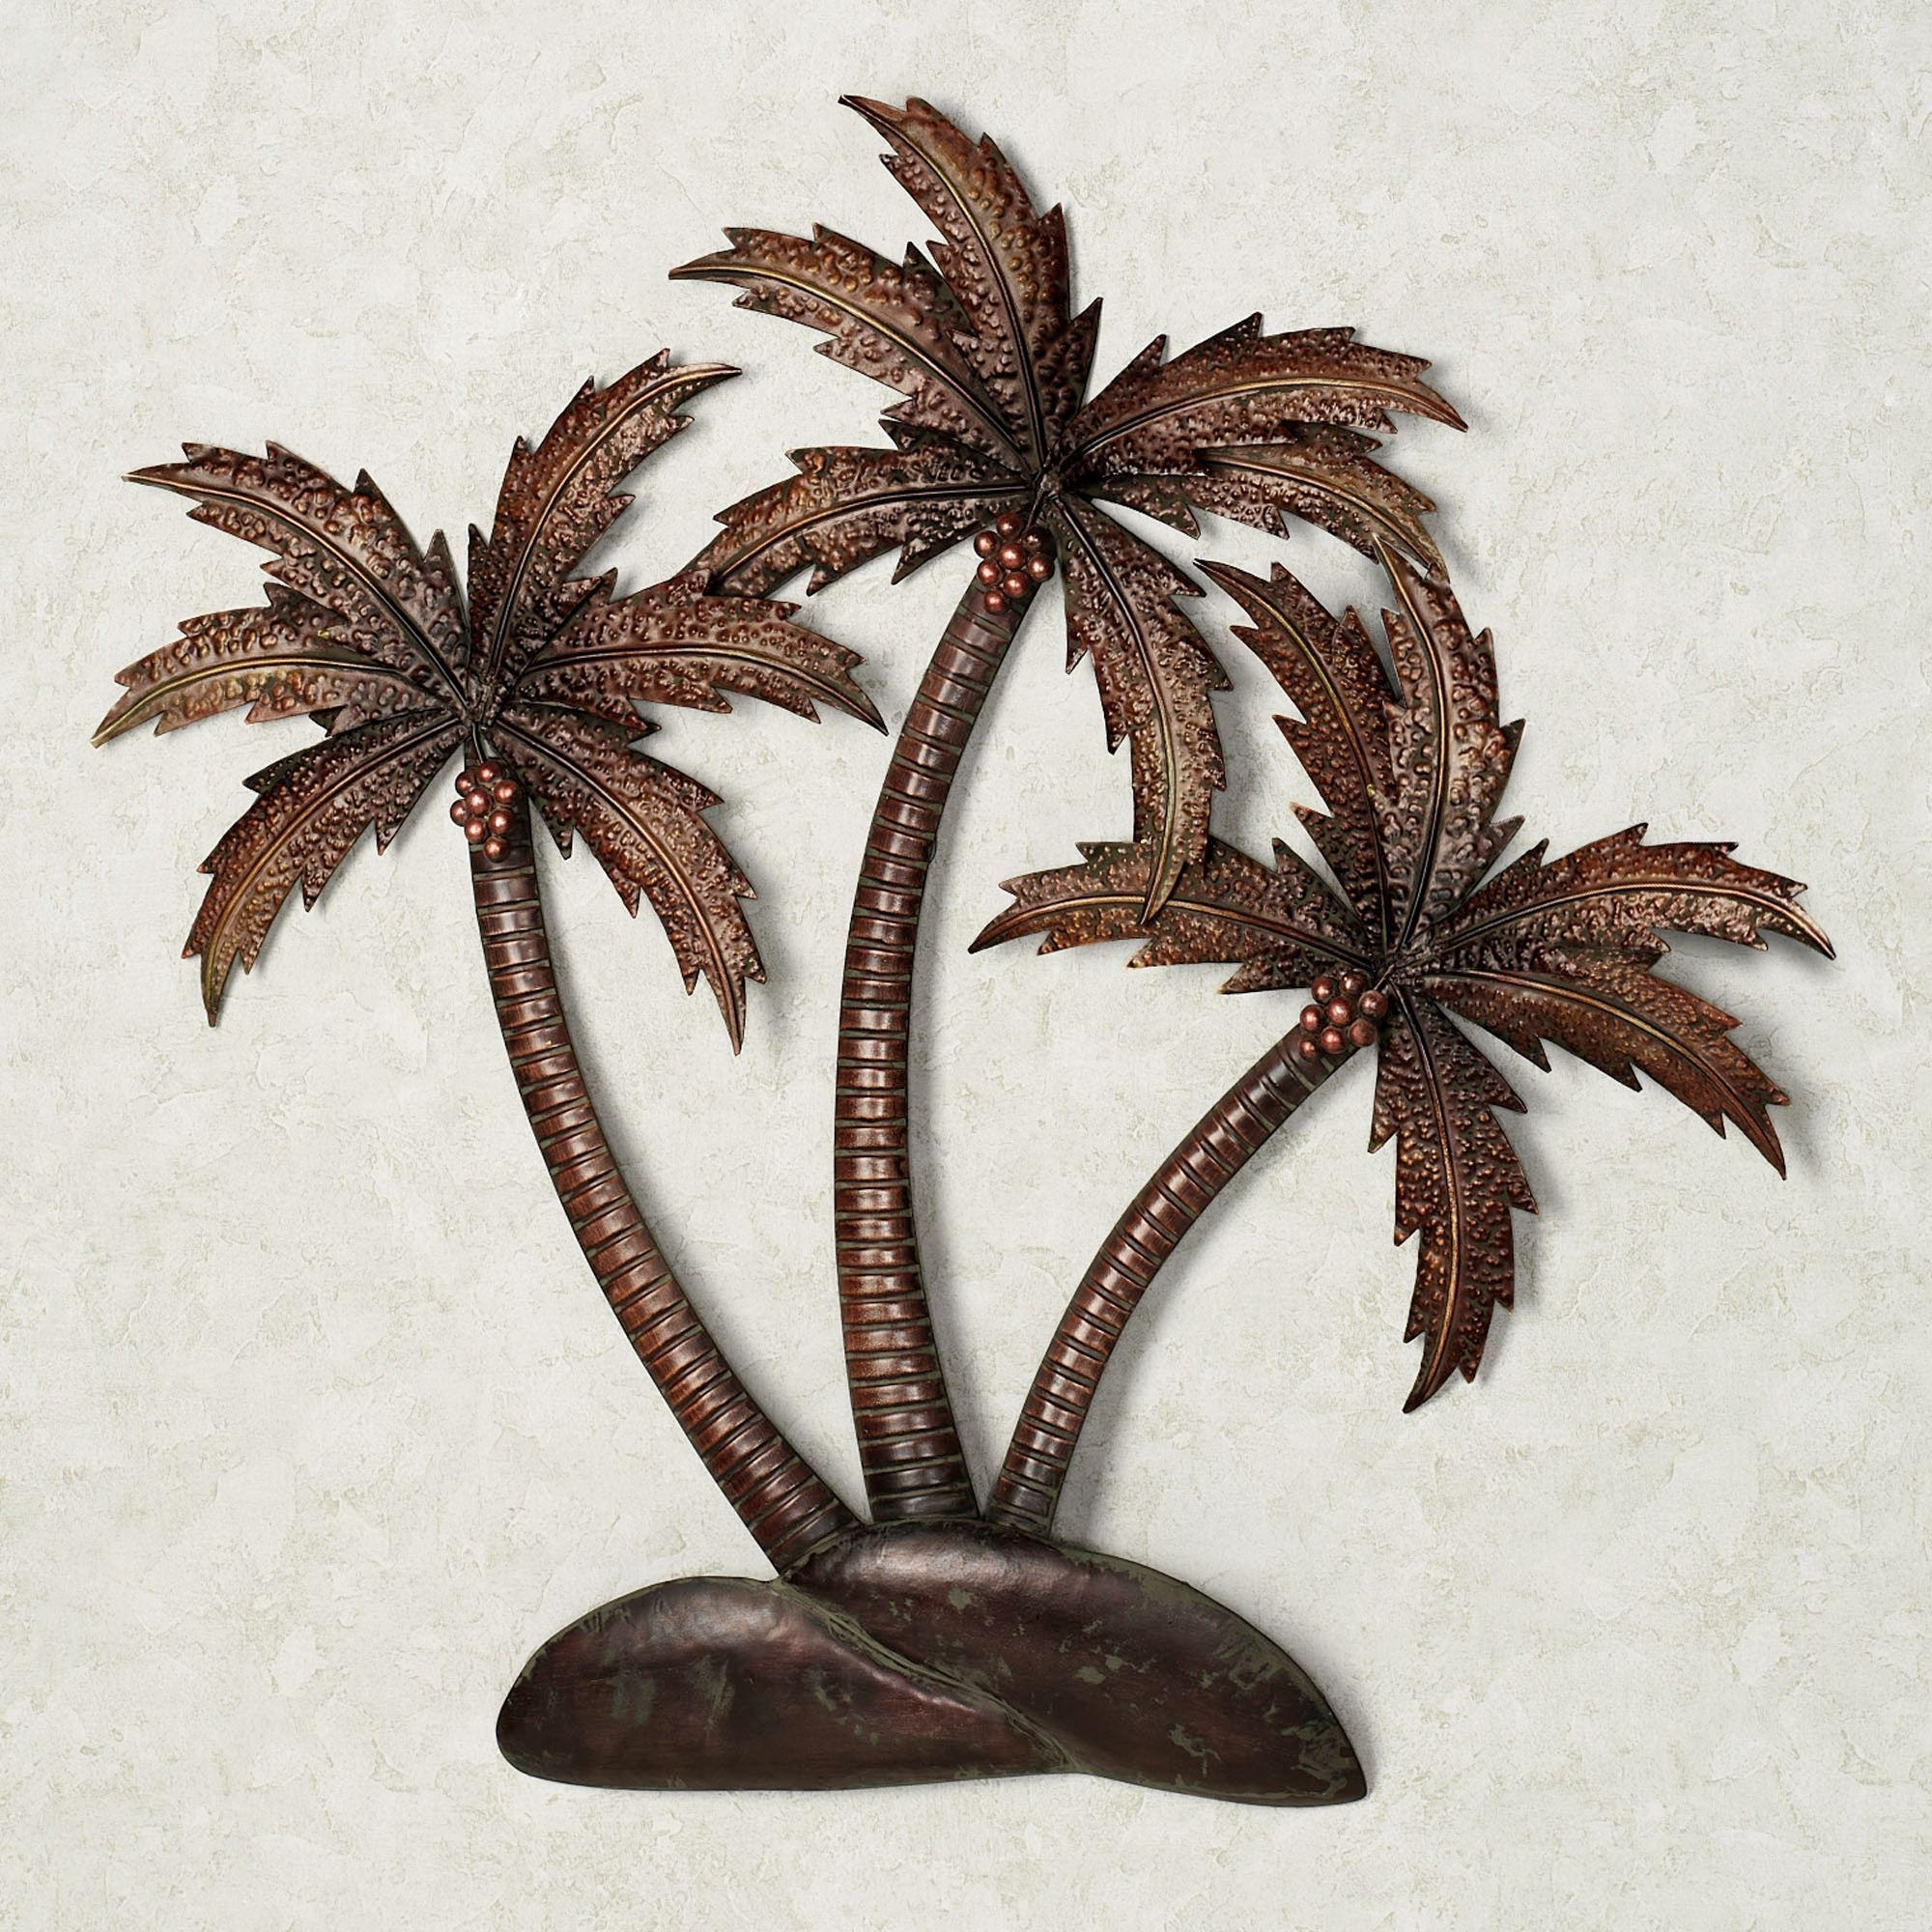 Stupendous Design Decor Tropical Wall Art New Wall Decor Tropical Inside Tropical Outdoor Wall Art (View 2 of 20)